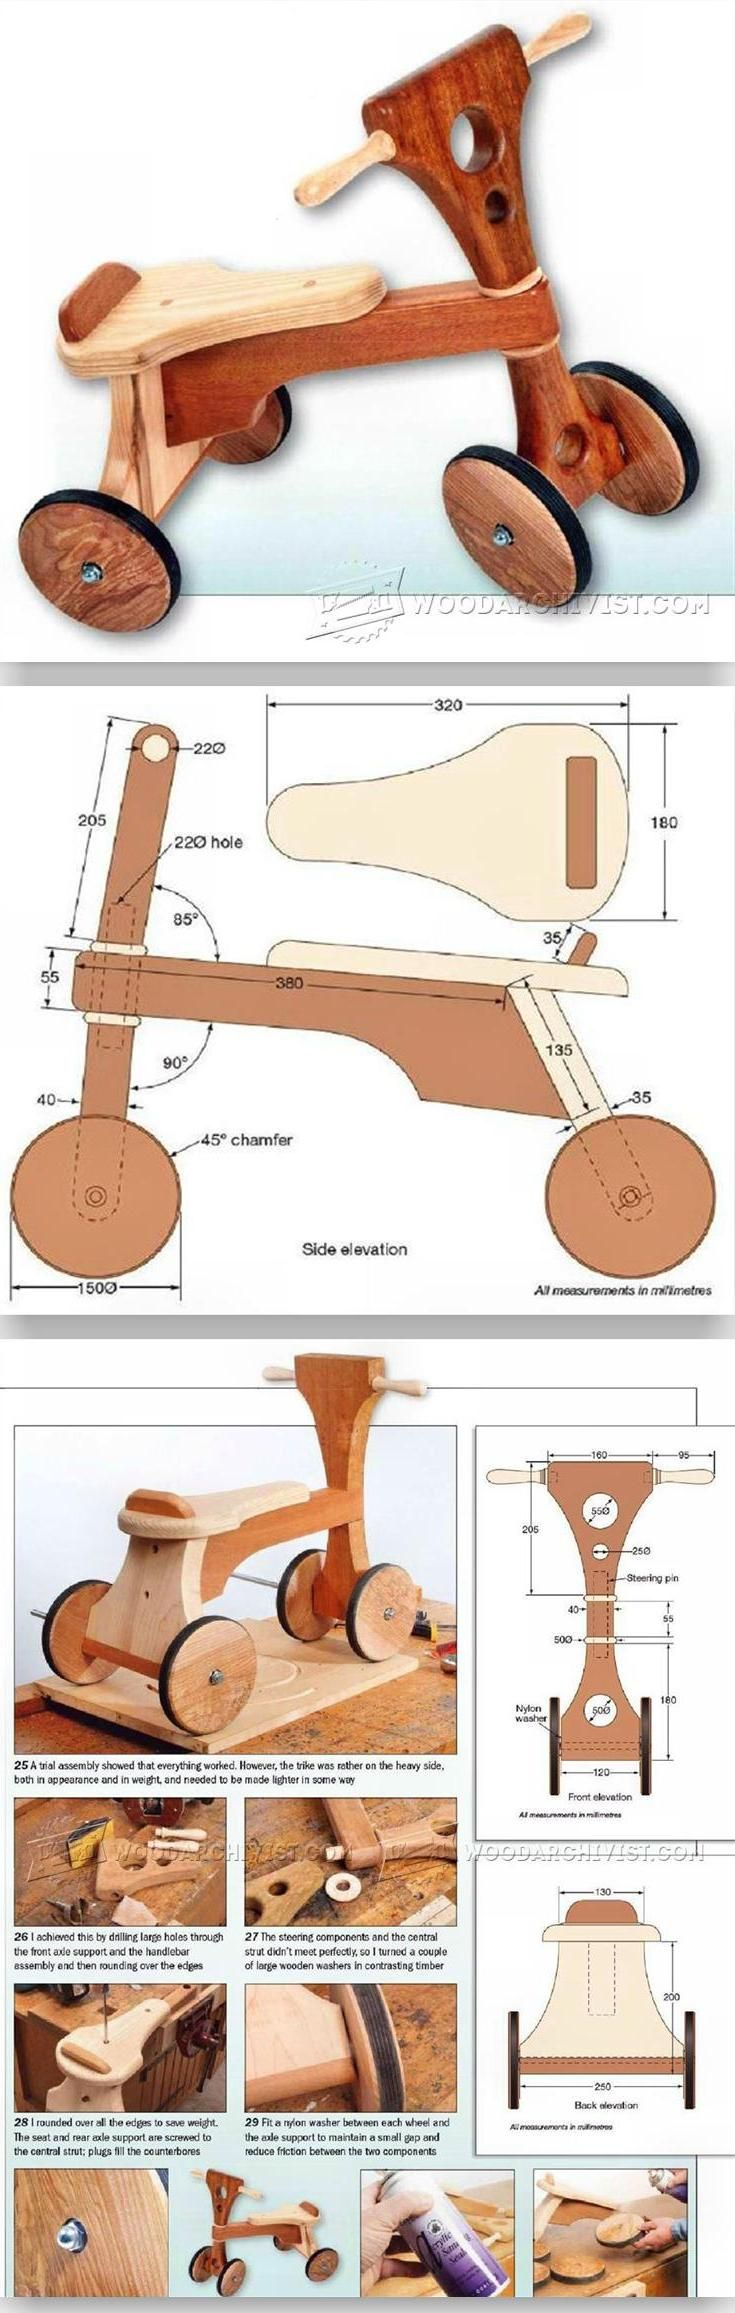 Wooden Tricycle Plans - Children's Outdoor Plans and Projects | WoodArchivist.com